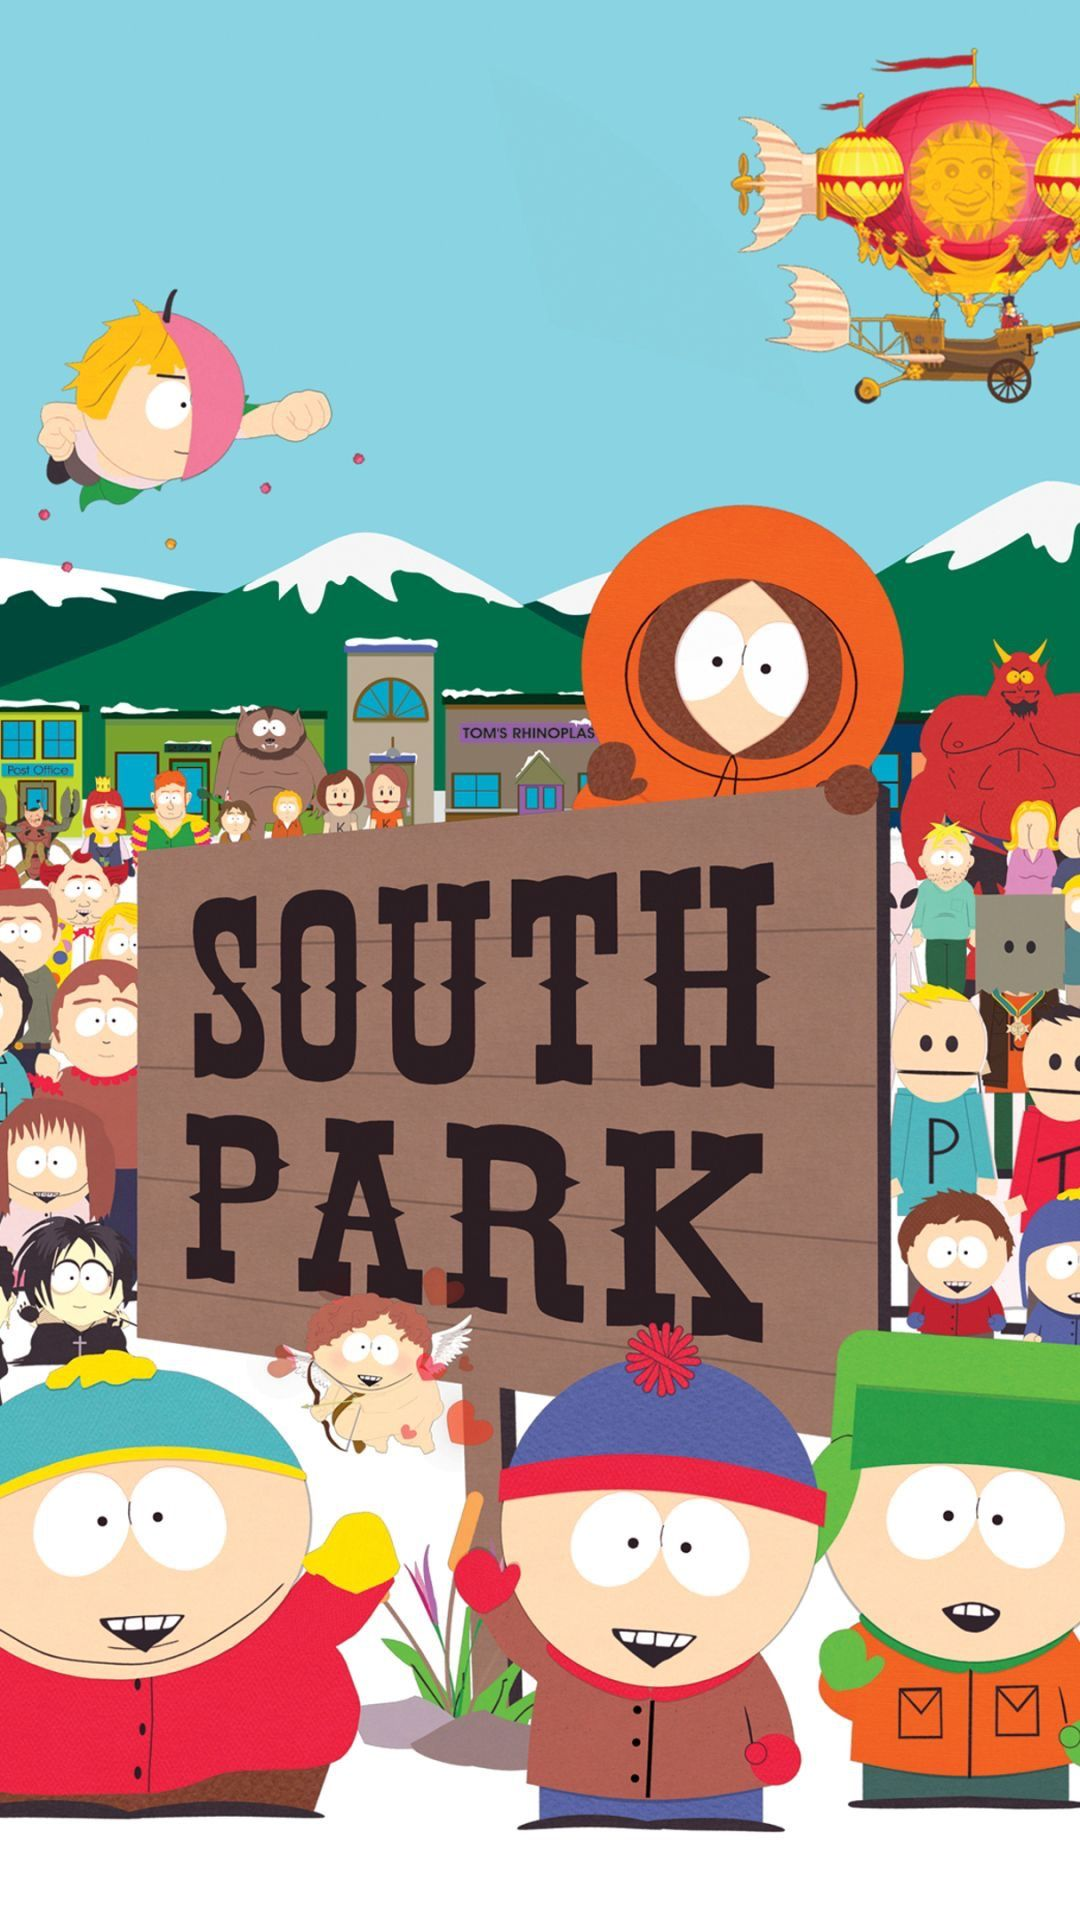 Pin By Edgar Alva On Imagens South Park Poster South Park Nature Iphone Wallpaper